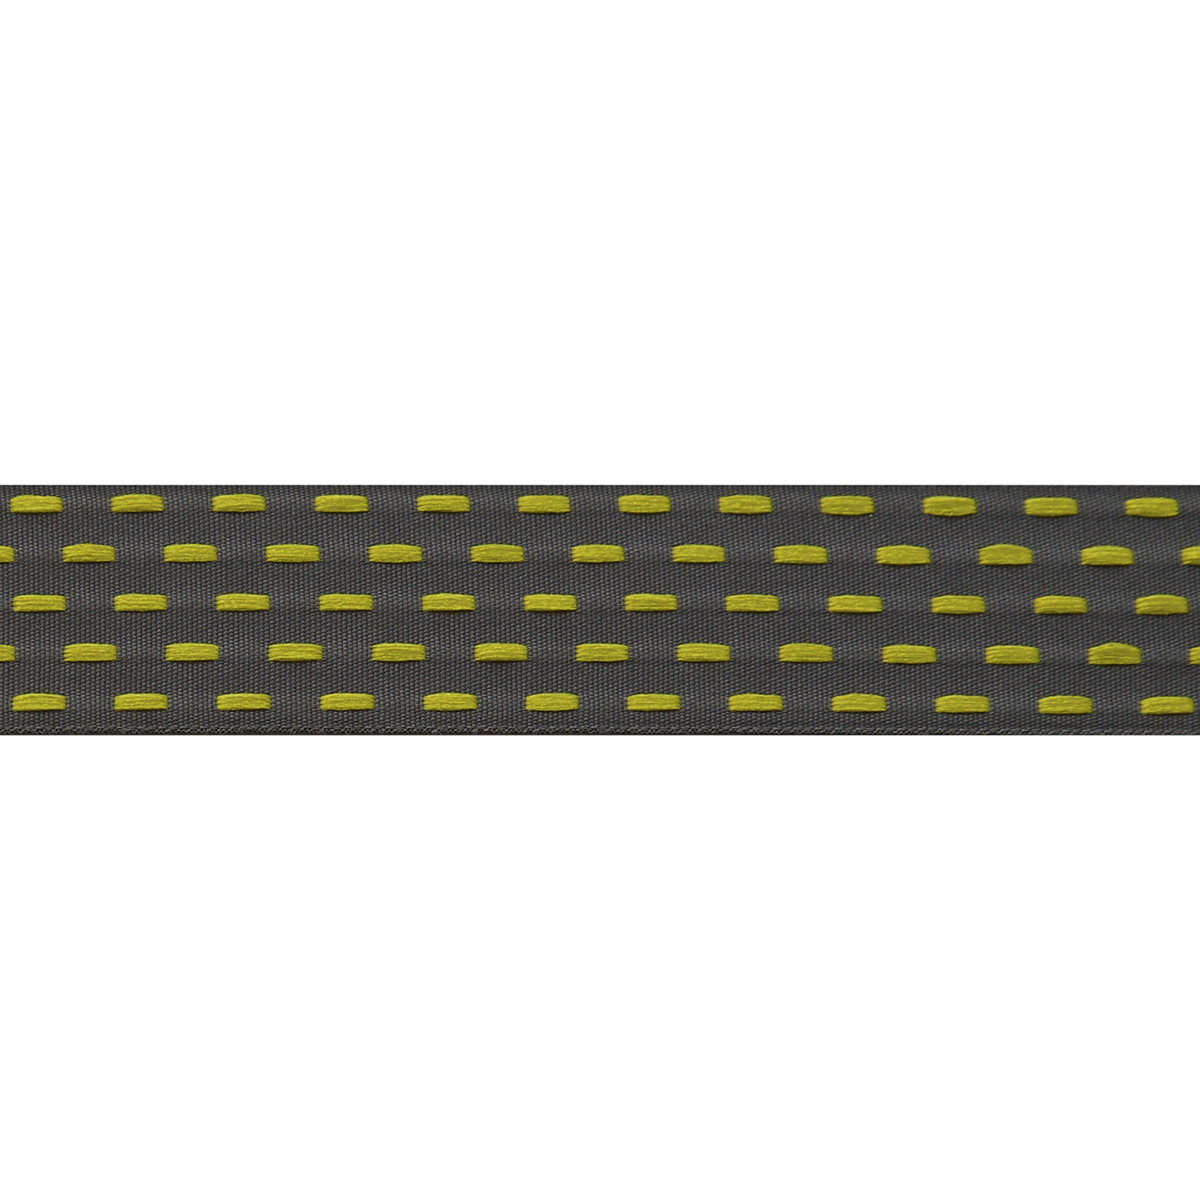 Berisfords Parallel Stitch Ribbon - 25mm Wide - Graphite / Sunflower